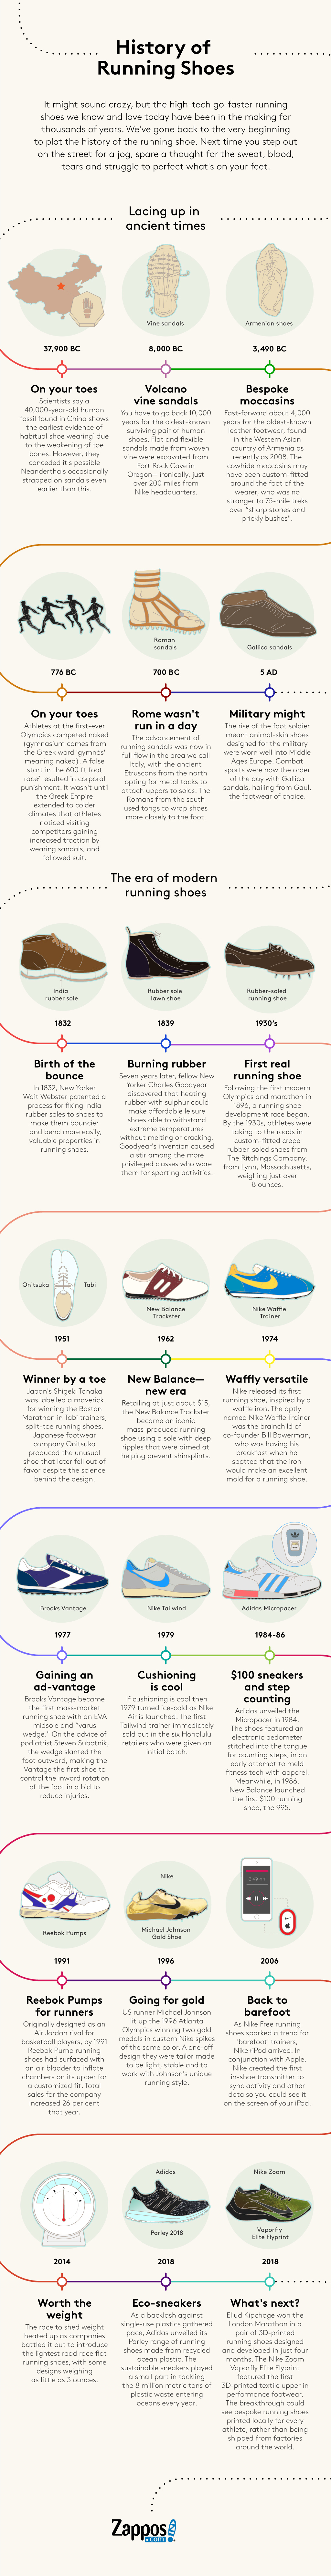 History of Running Shoes |